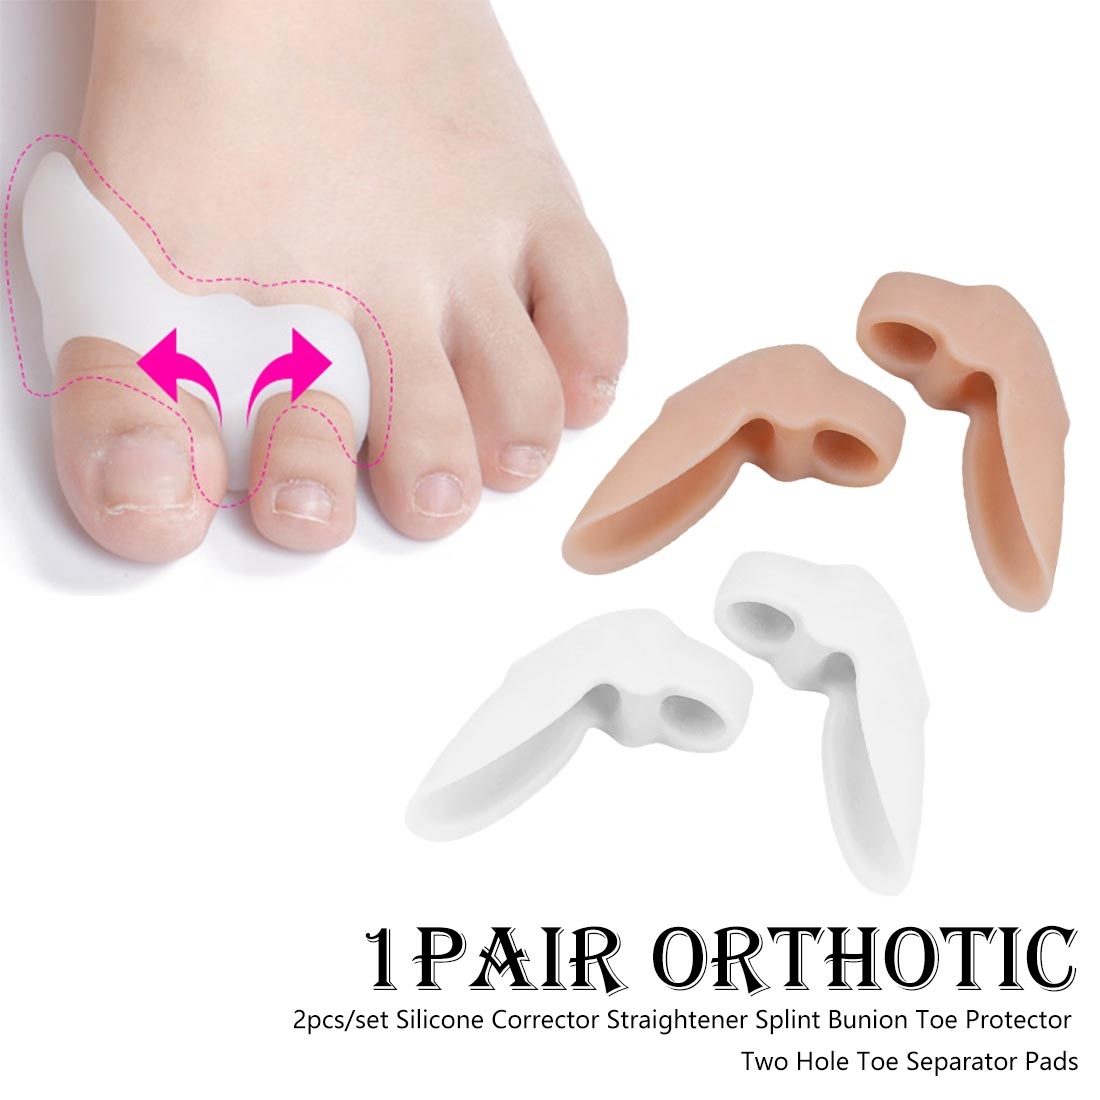 Daily Silicone Toe Big Bone 2 Pieces Toe Separator Silicone Gel Foot Fingers Two Hole Toe Separator Correct Orthotics